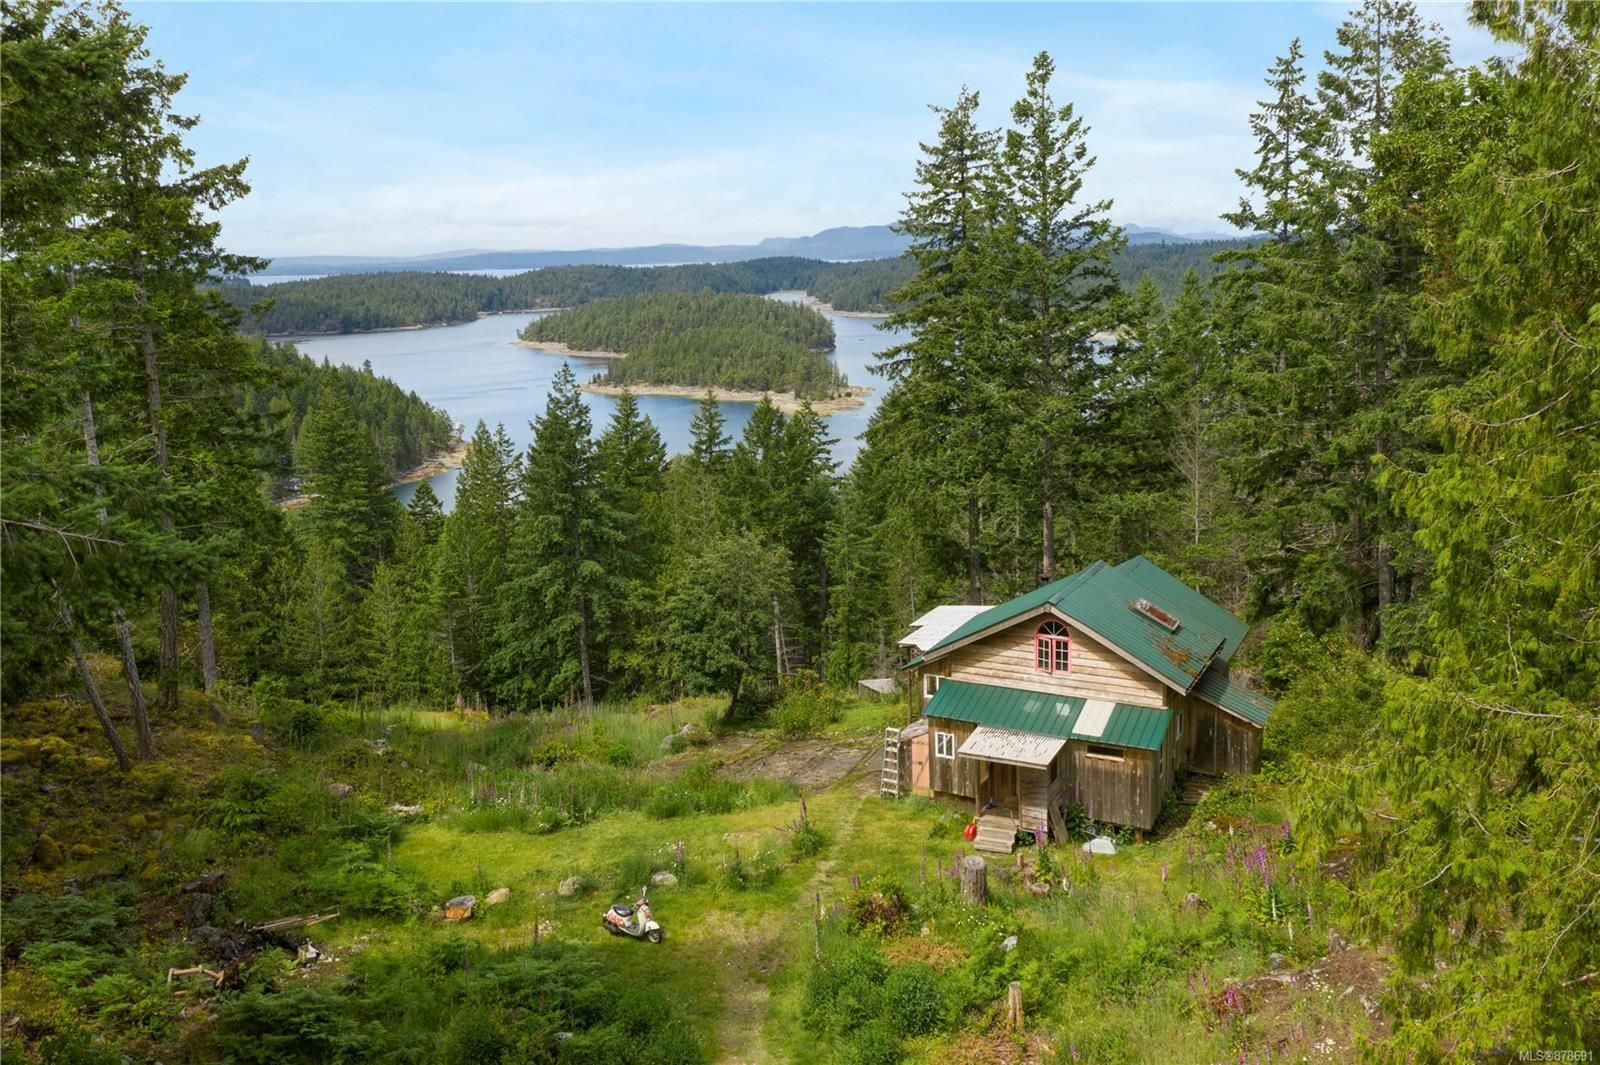 Photo 4: Photos: 979 Thunder Rd in : Isl Cortes Island House for sale (Islands)  : MLS®# 878691